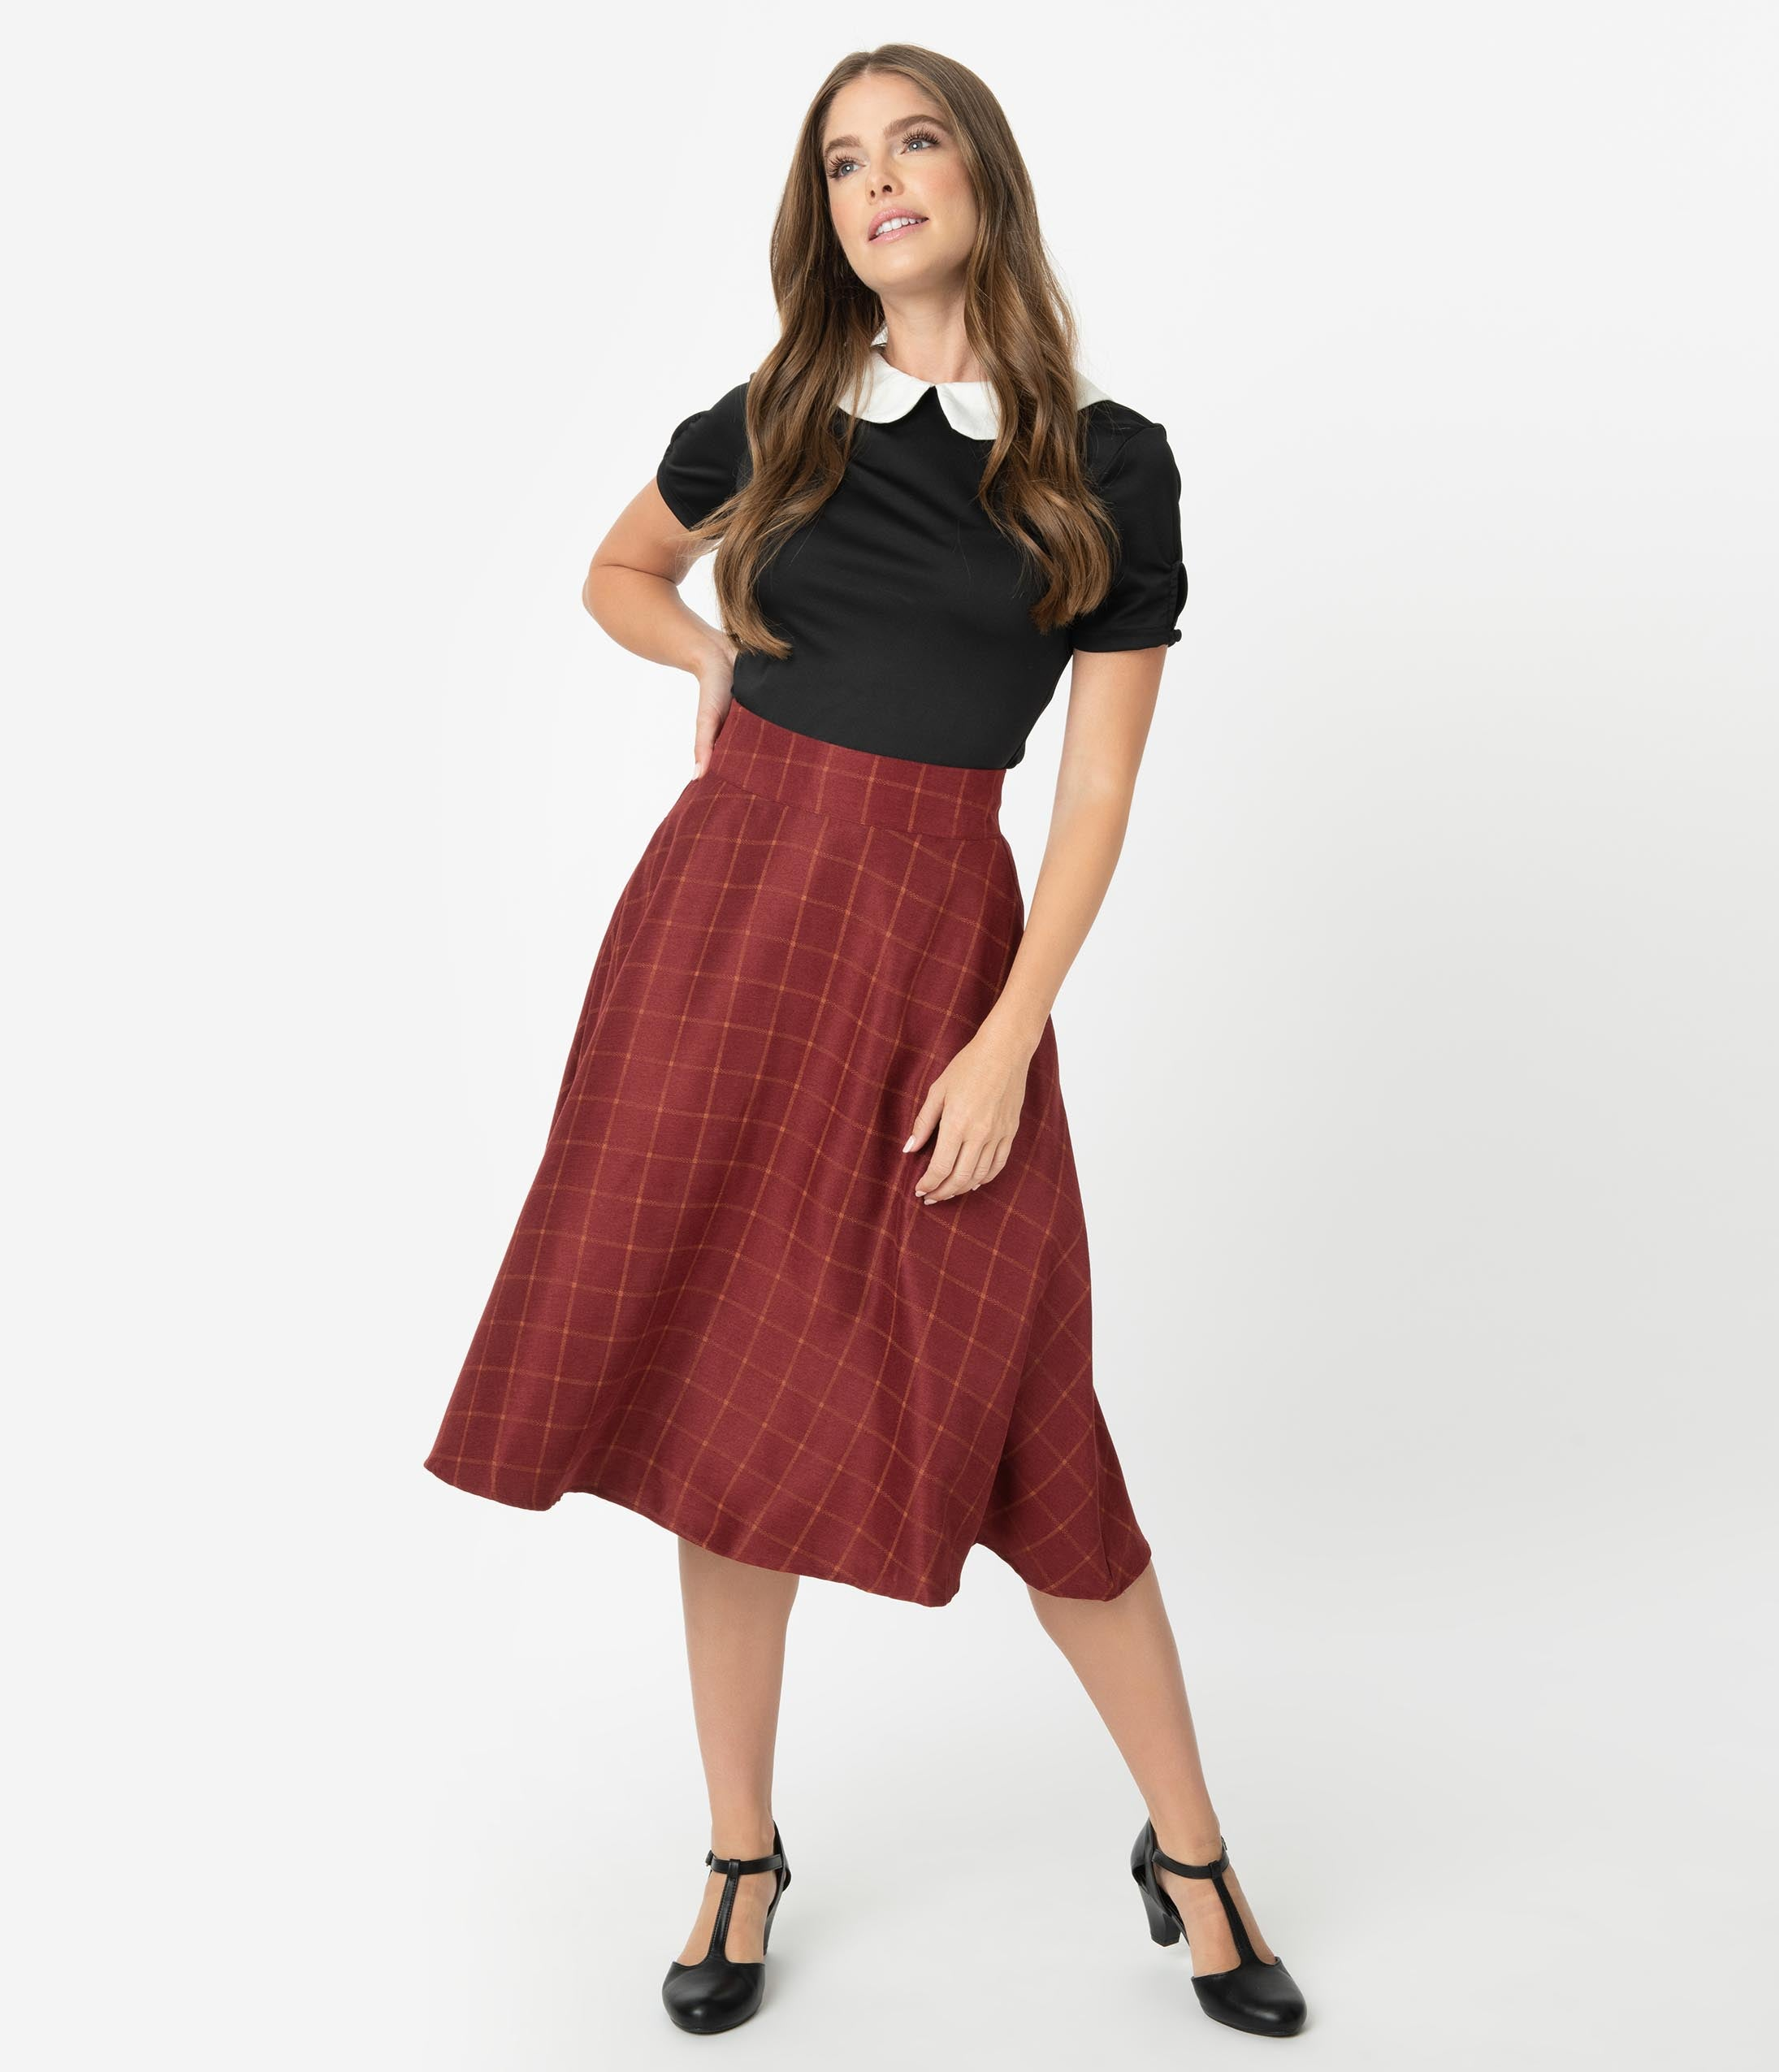 1940s Style Skirts- Vintage High Waisted Skirts Unique Vintage Retro Style Burgundy Windowpane High Waist Vivien Swing Skirt $58.00 AT vintagedancer.com